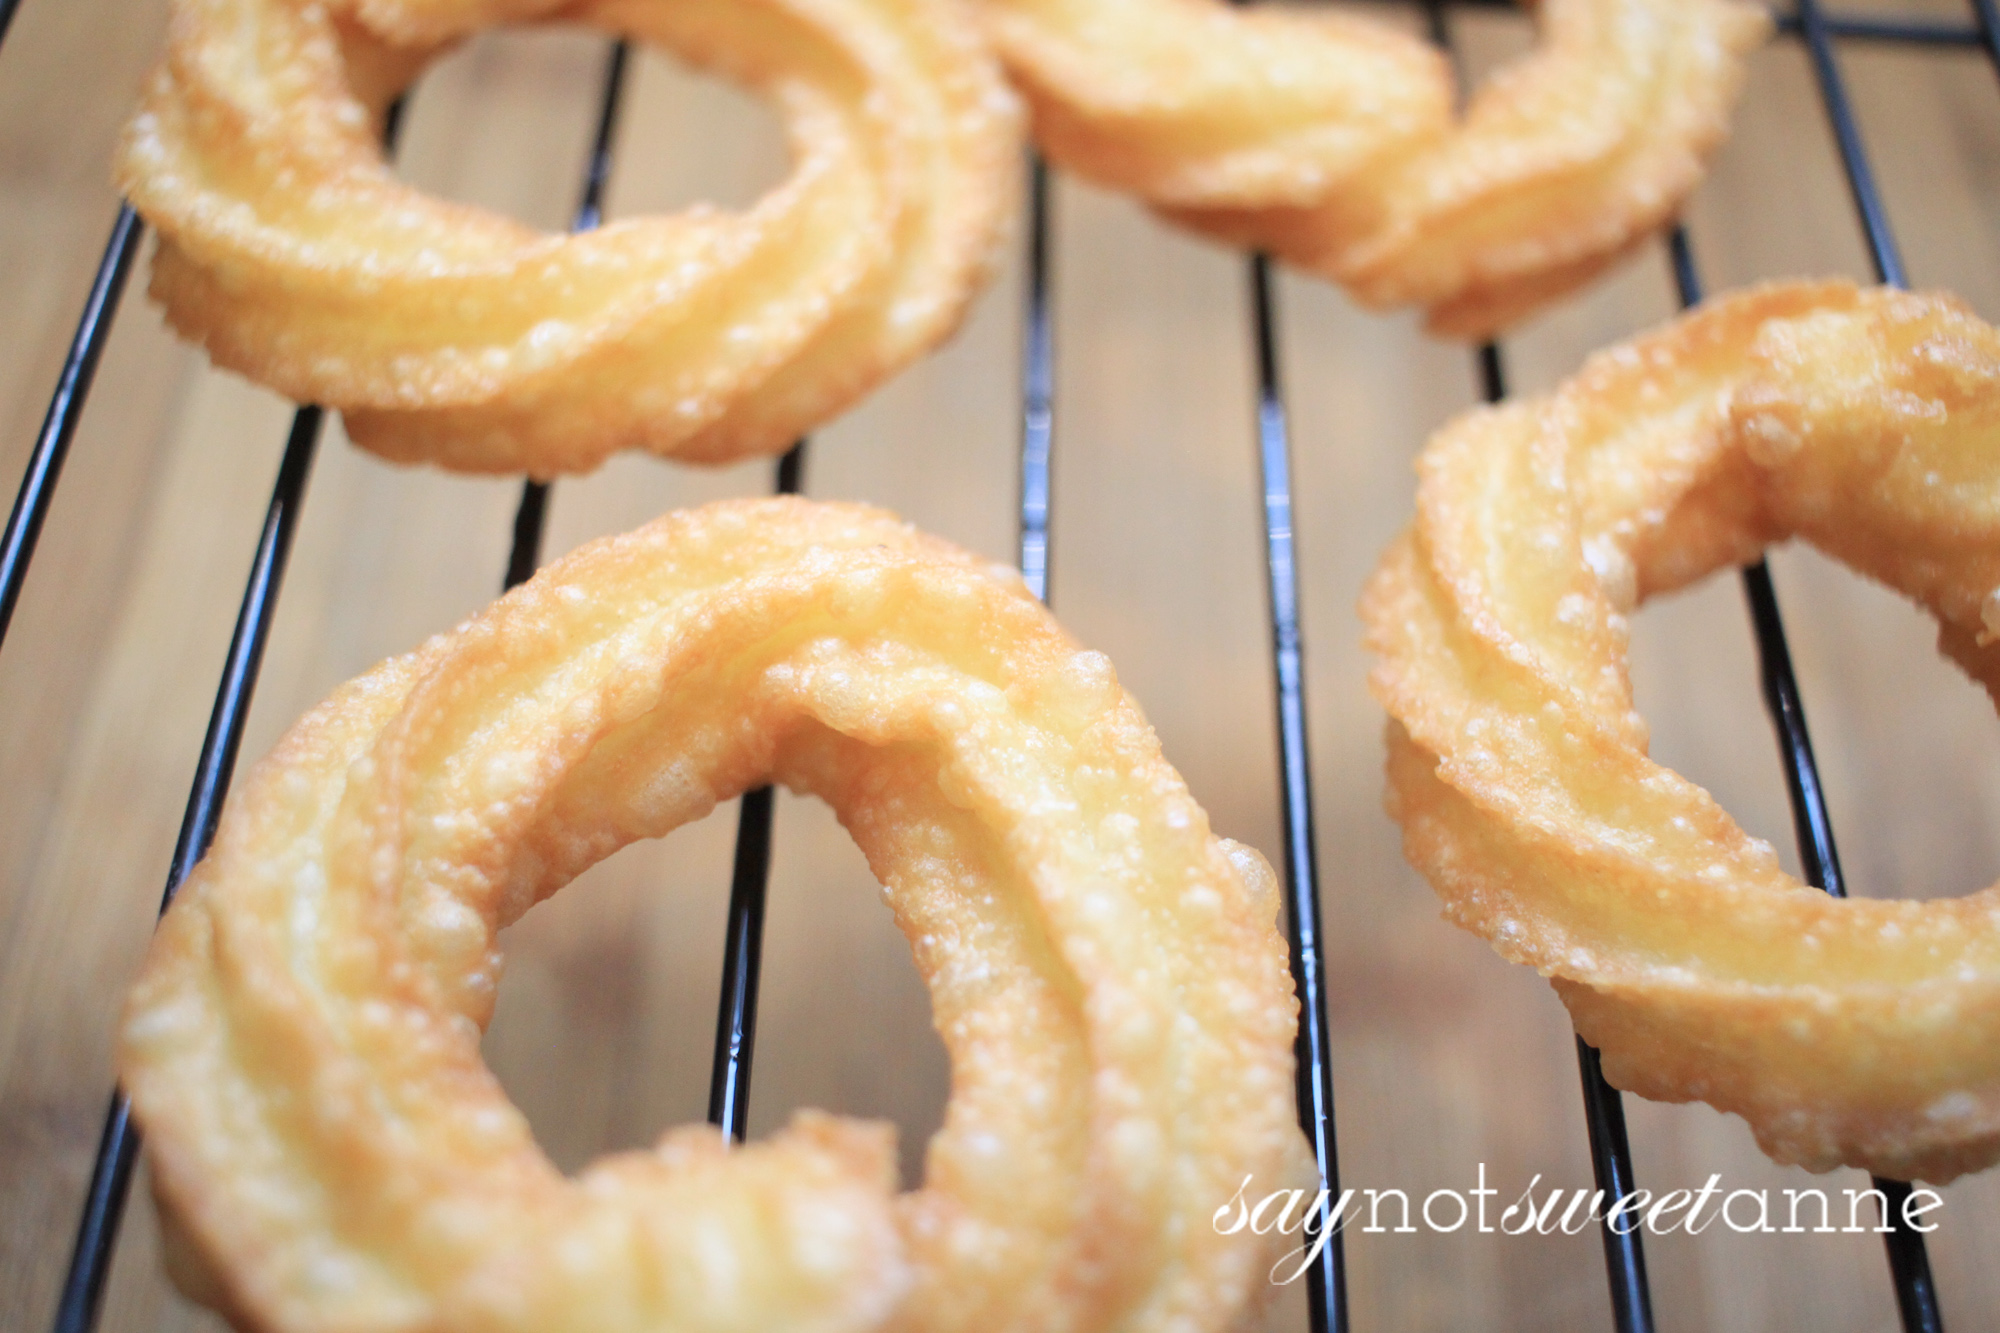 Simplified and Easy French Crullers! Perfect for a weekend treat, or to serve to guests. A time honored and somewhat tricky recipe demystified! |Saynotsweetanne.com